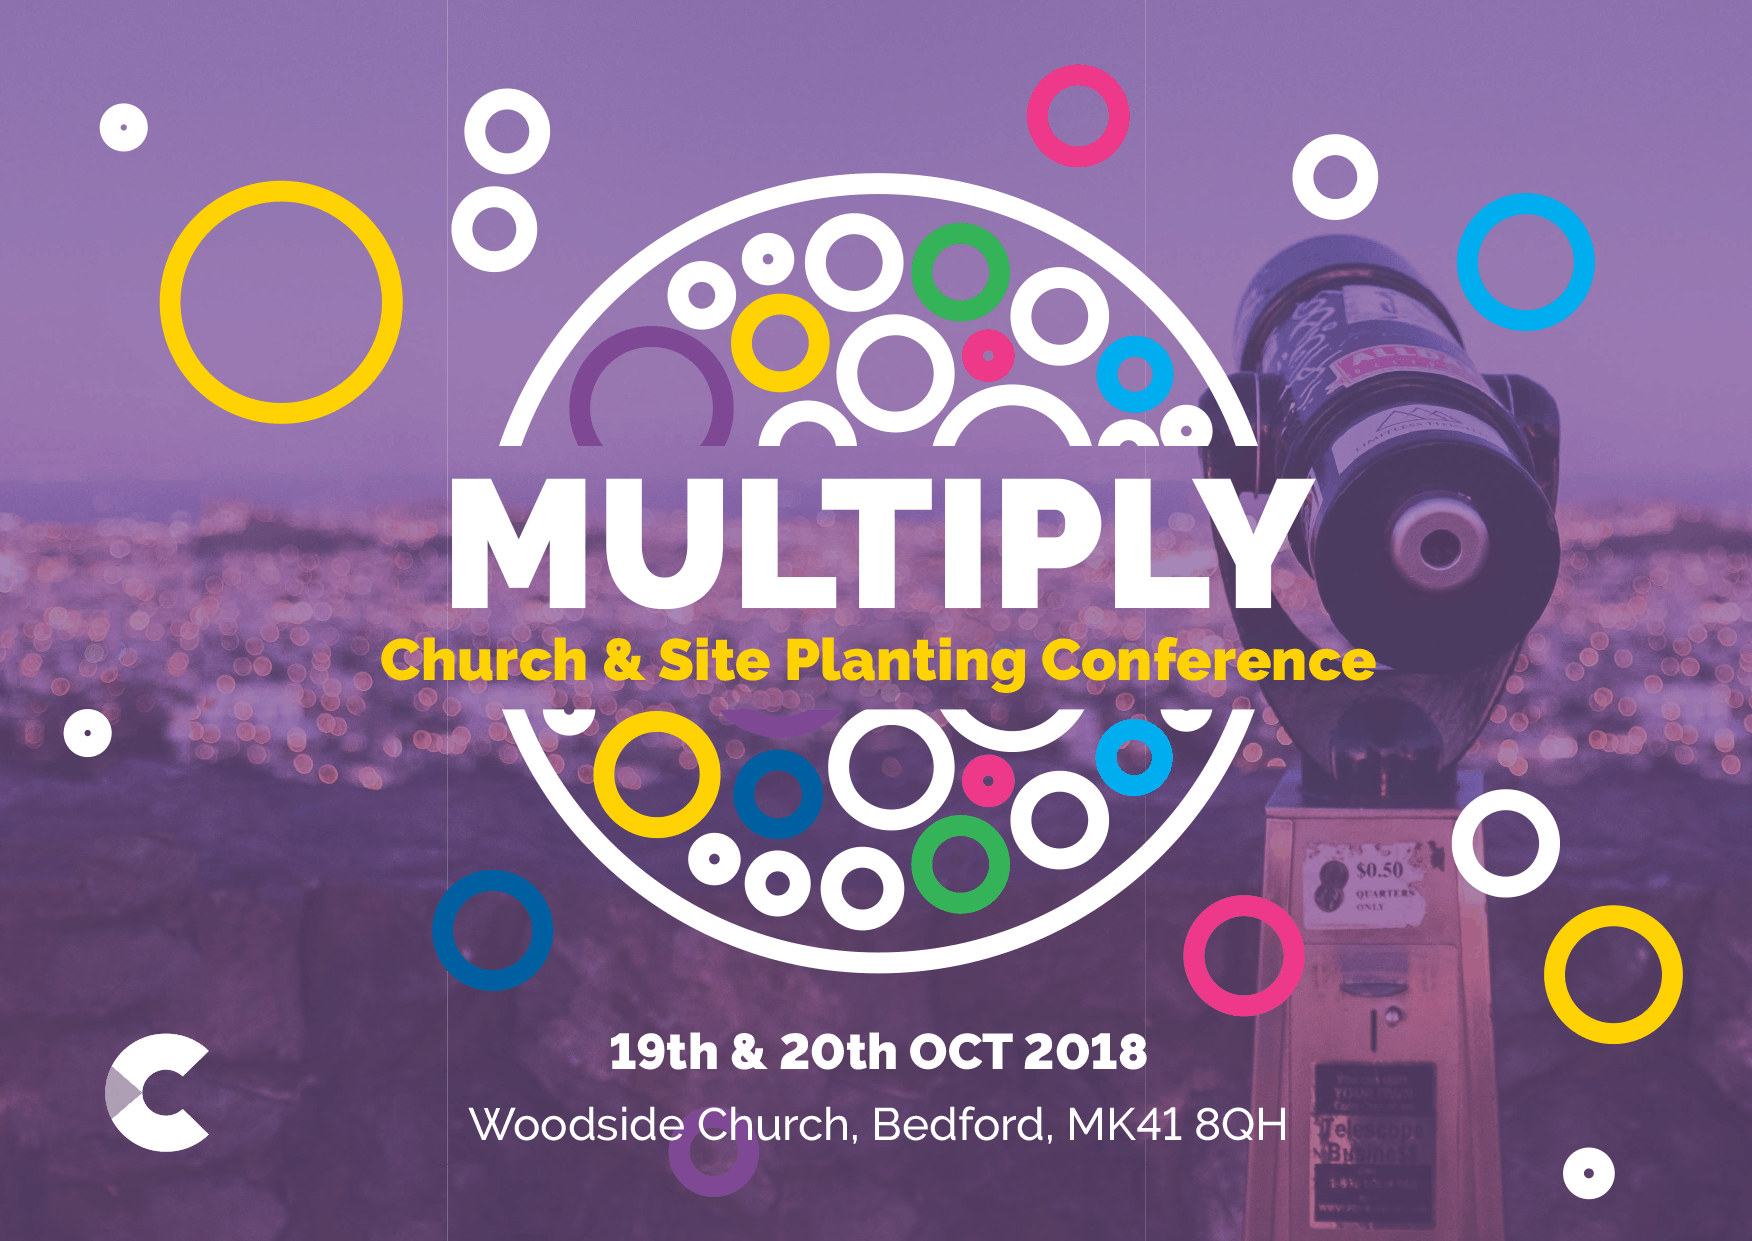 Multiply Church and Site Planting Conference